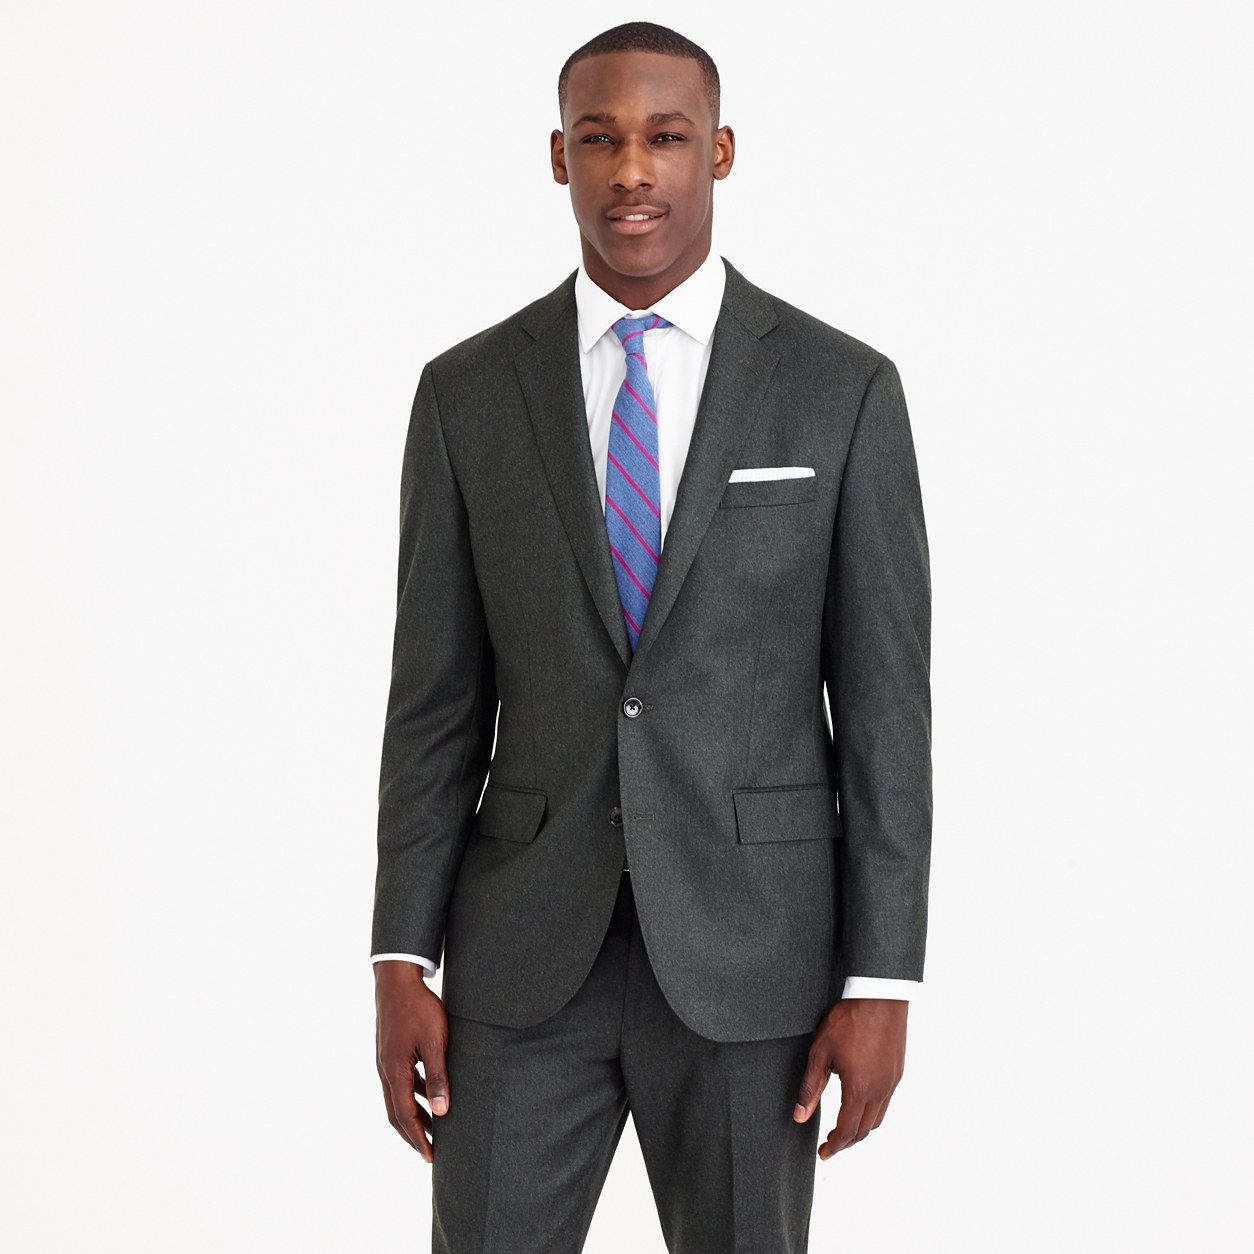 Men's outfits with flannel  JCrew Mens Crosby Suit Jacket In Heathered Italian Wool Flannel